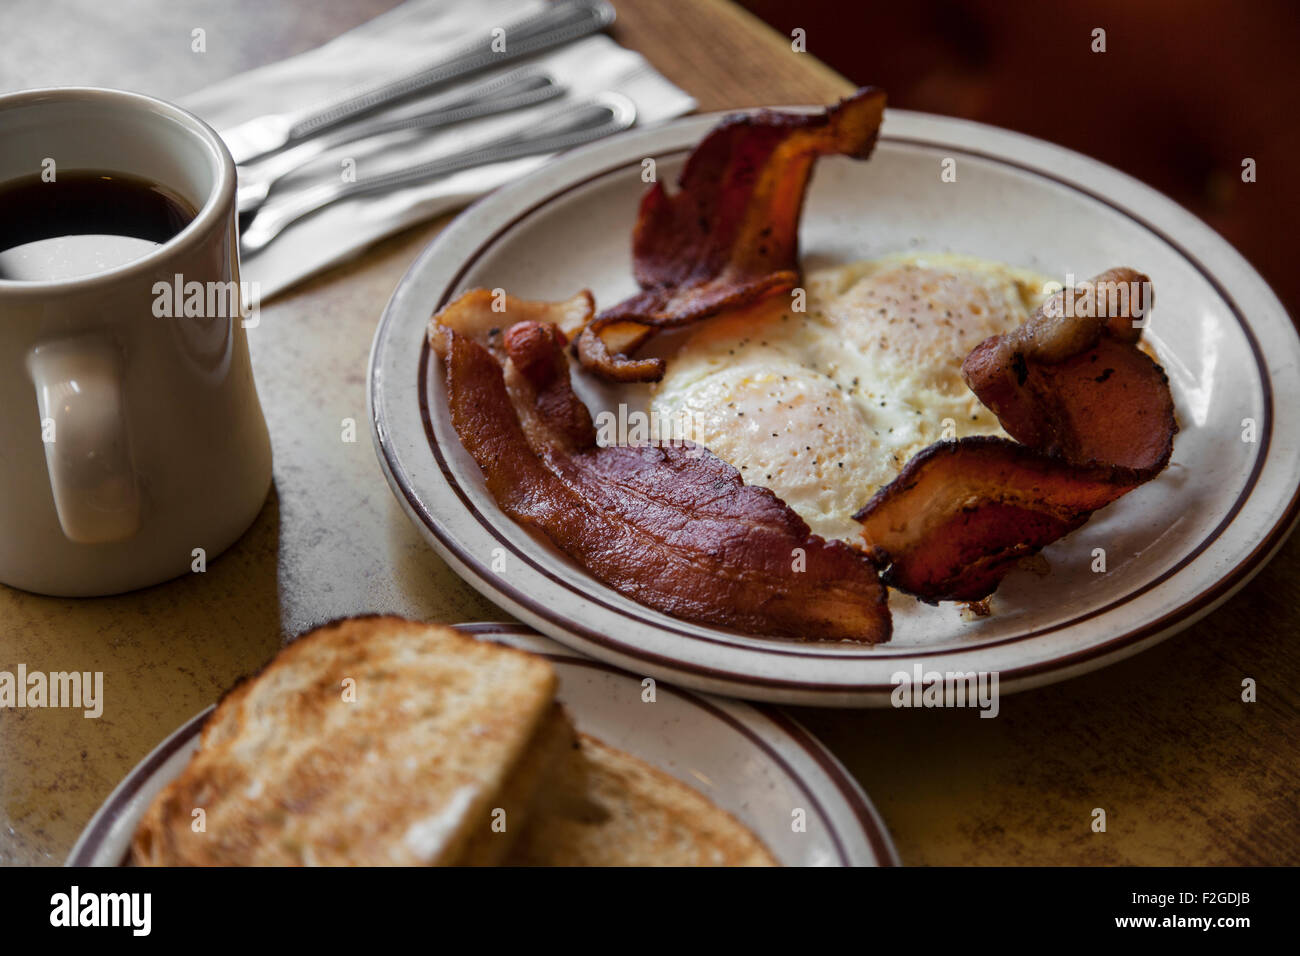 Eggs, bacon, toast and coffee at a diner with silverware - Stock Image